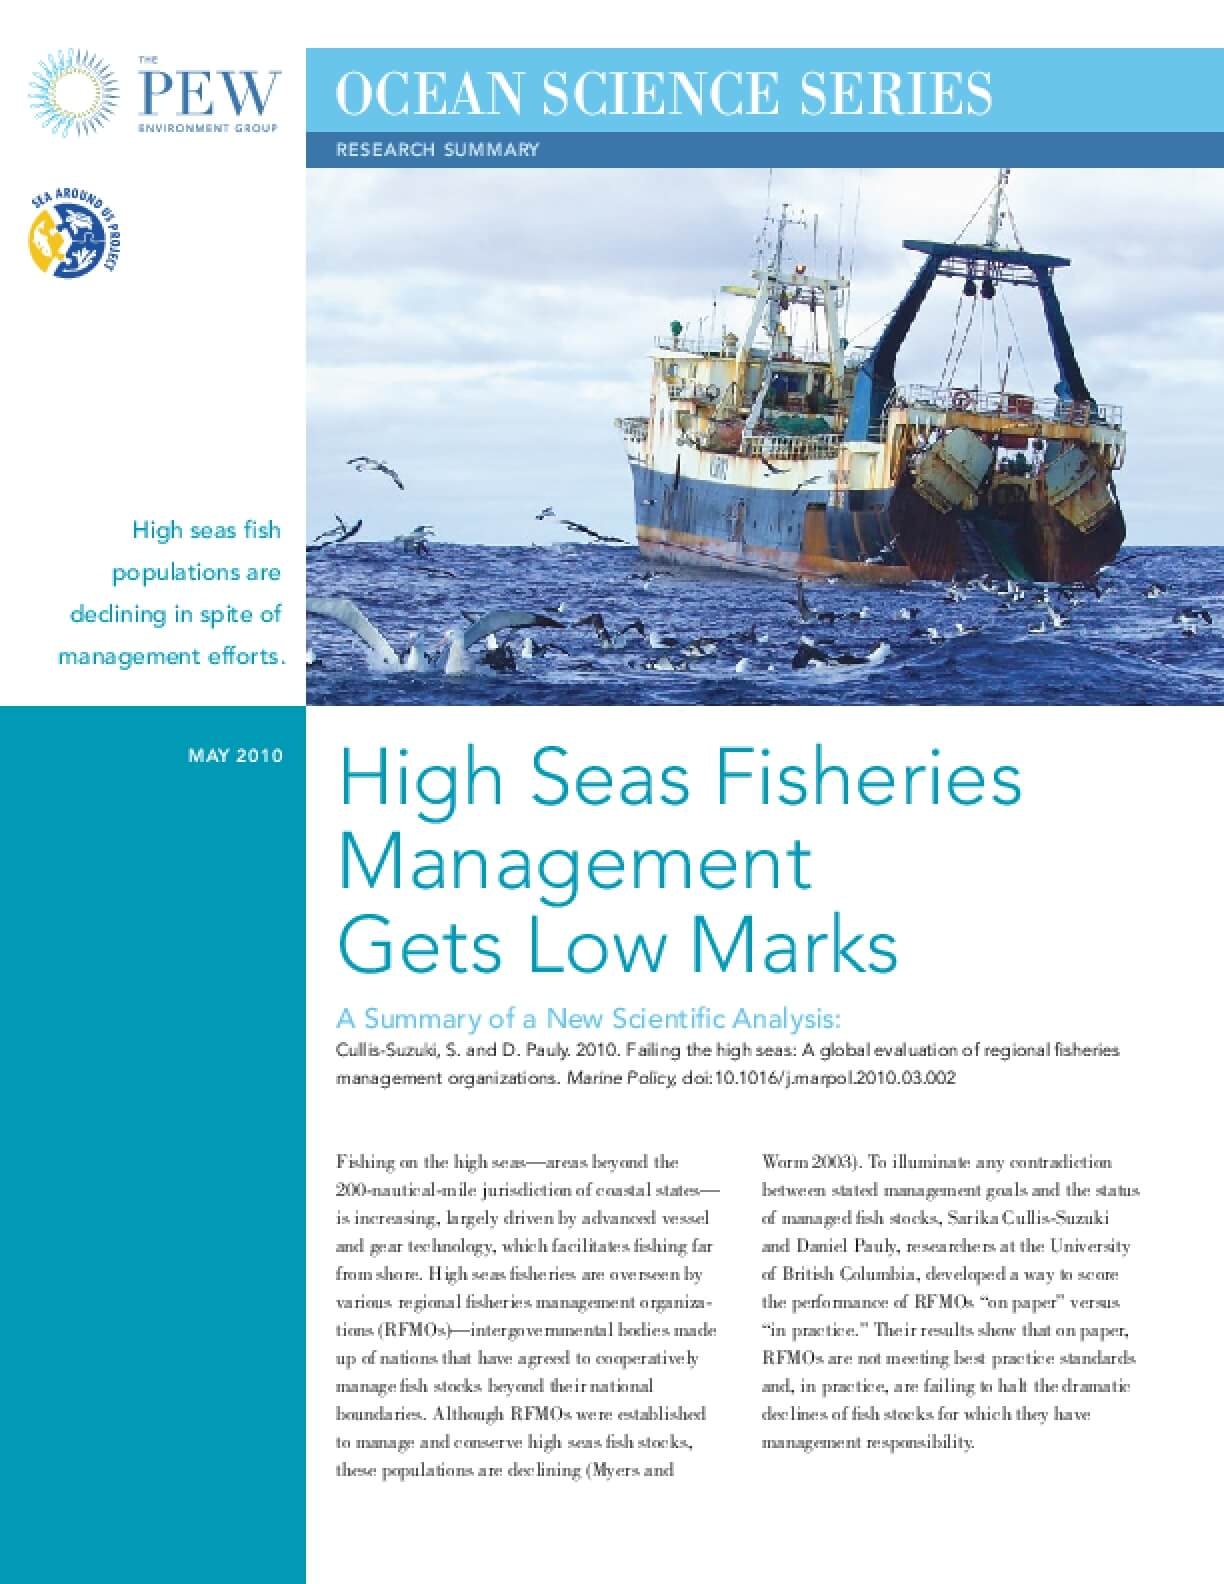 High Seas Fisheries Management Gets Low Marks